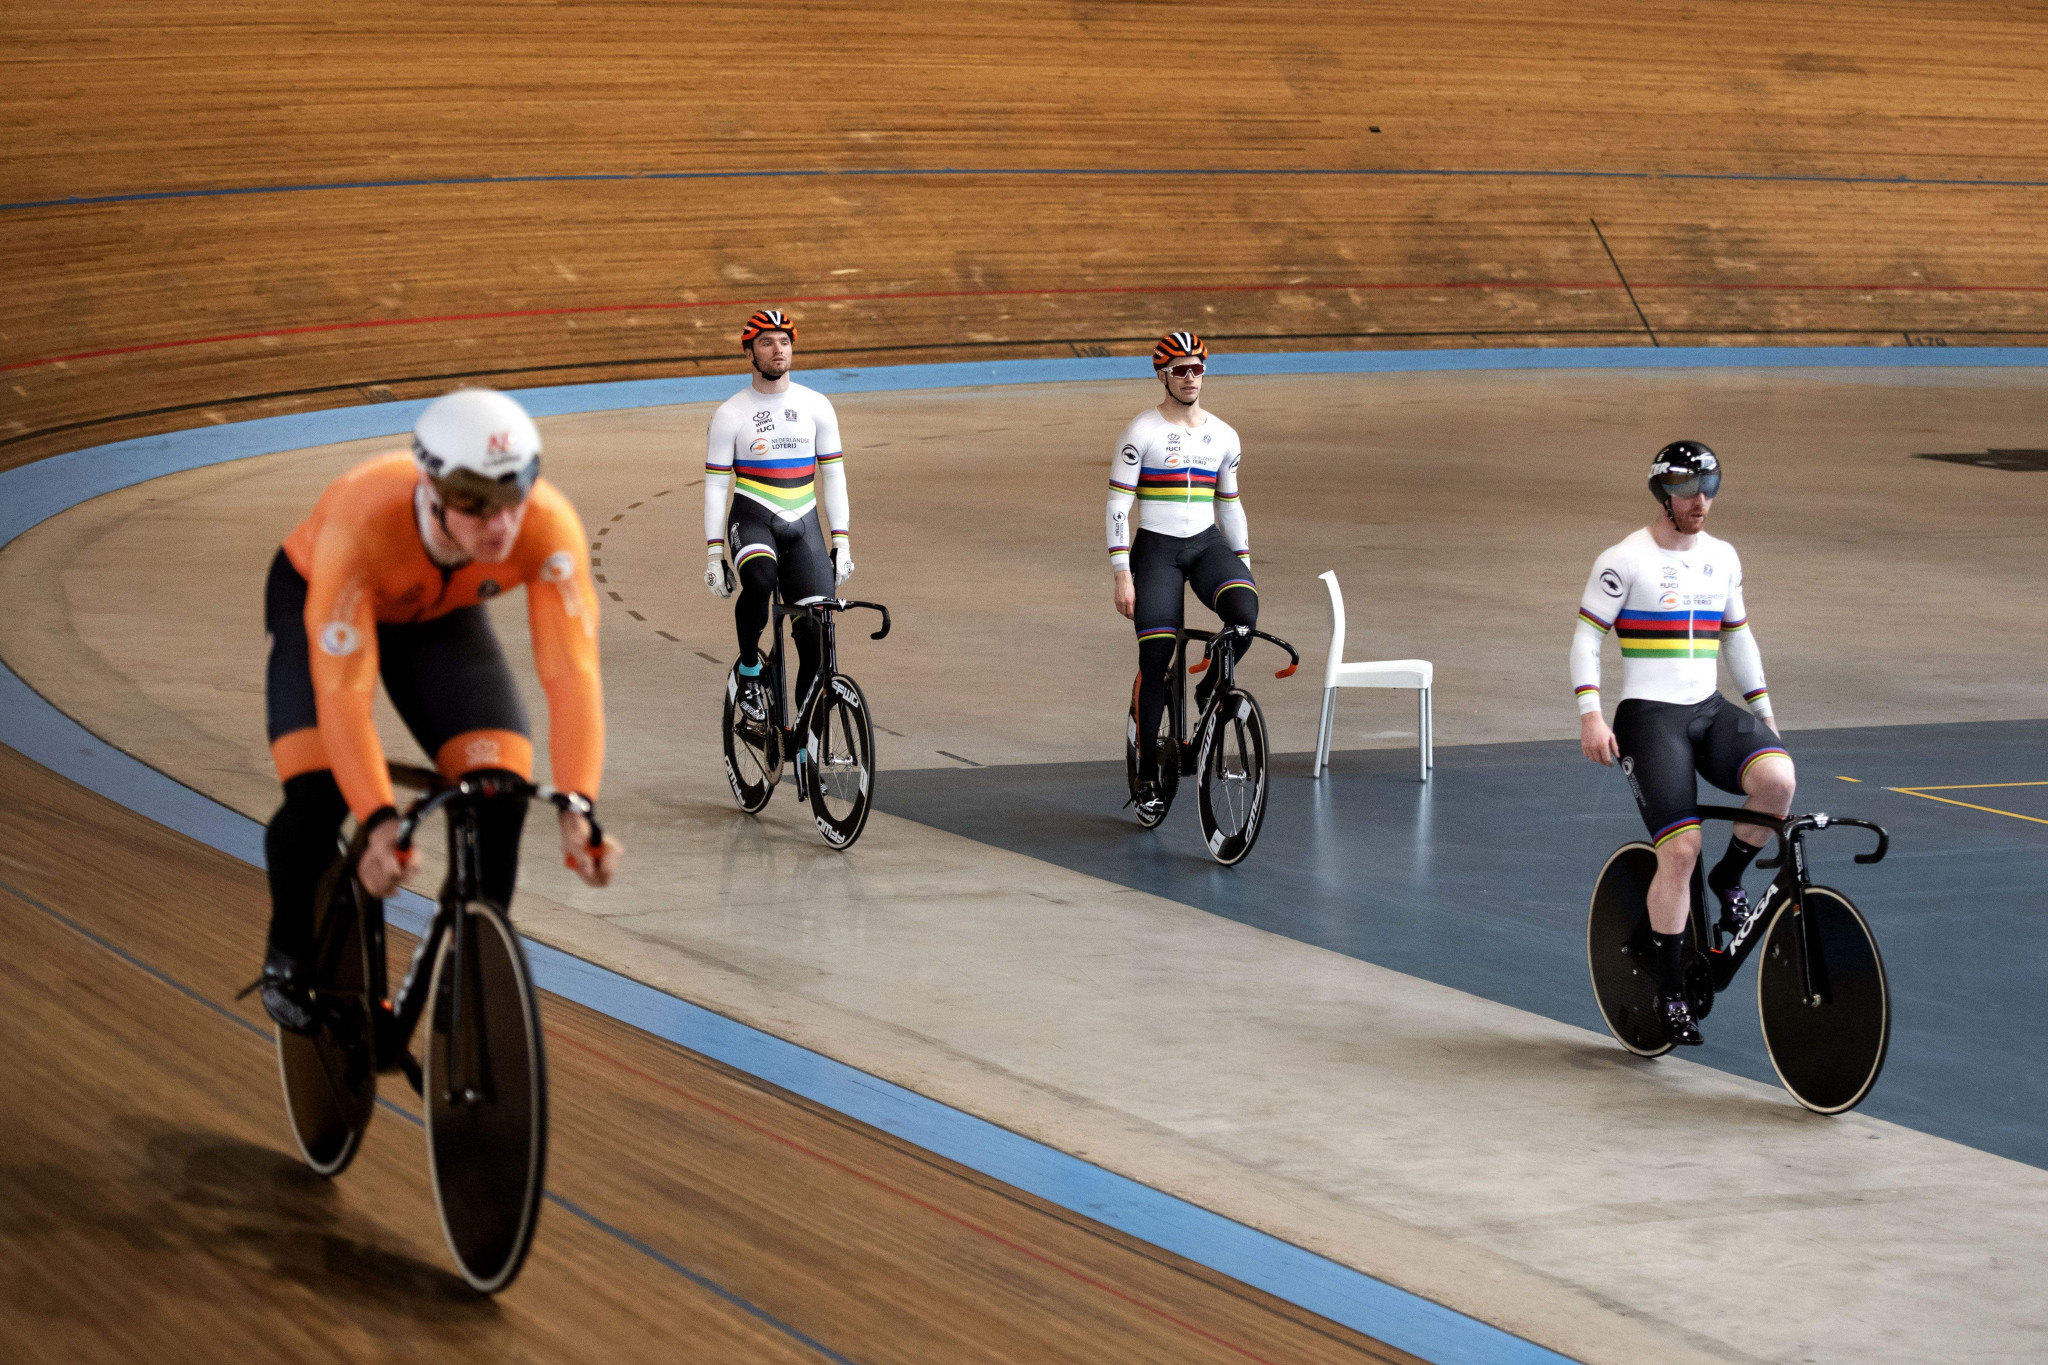 Berlin poised for UCI World Championships in final track test before Tokyo 2020